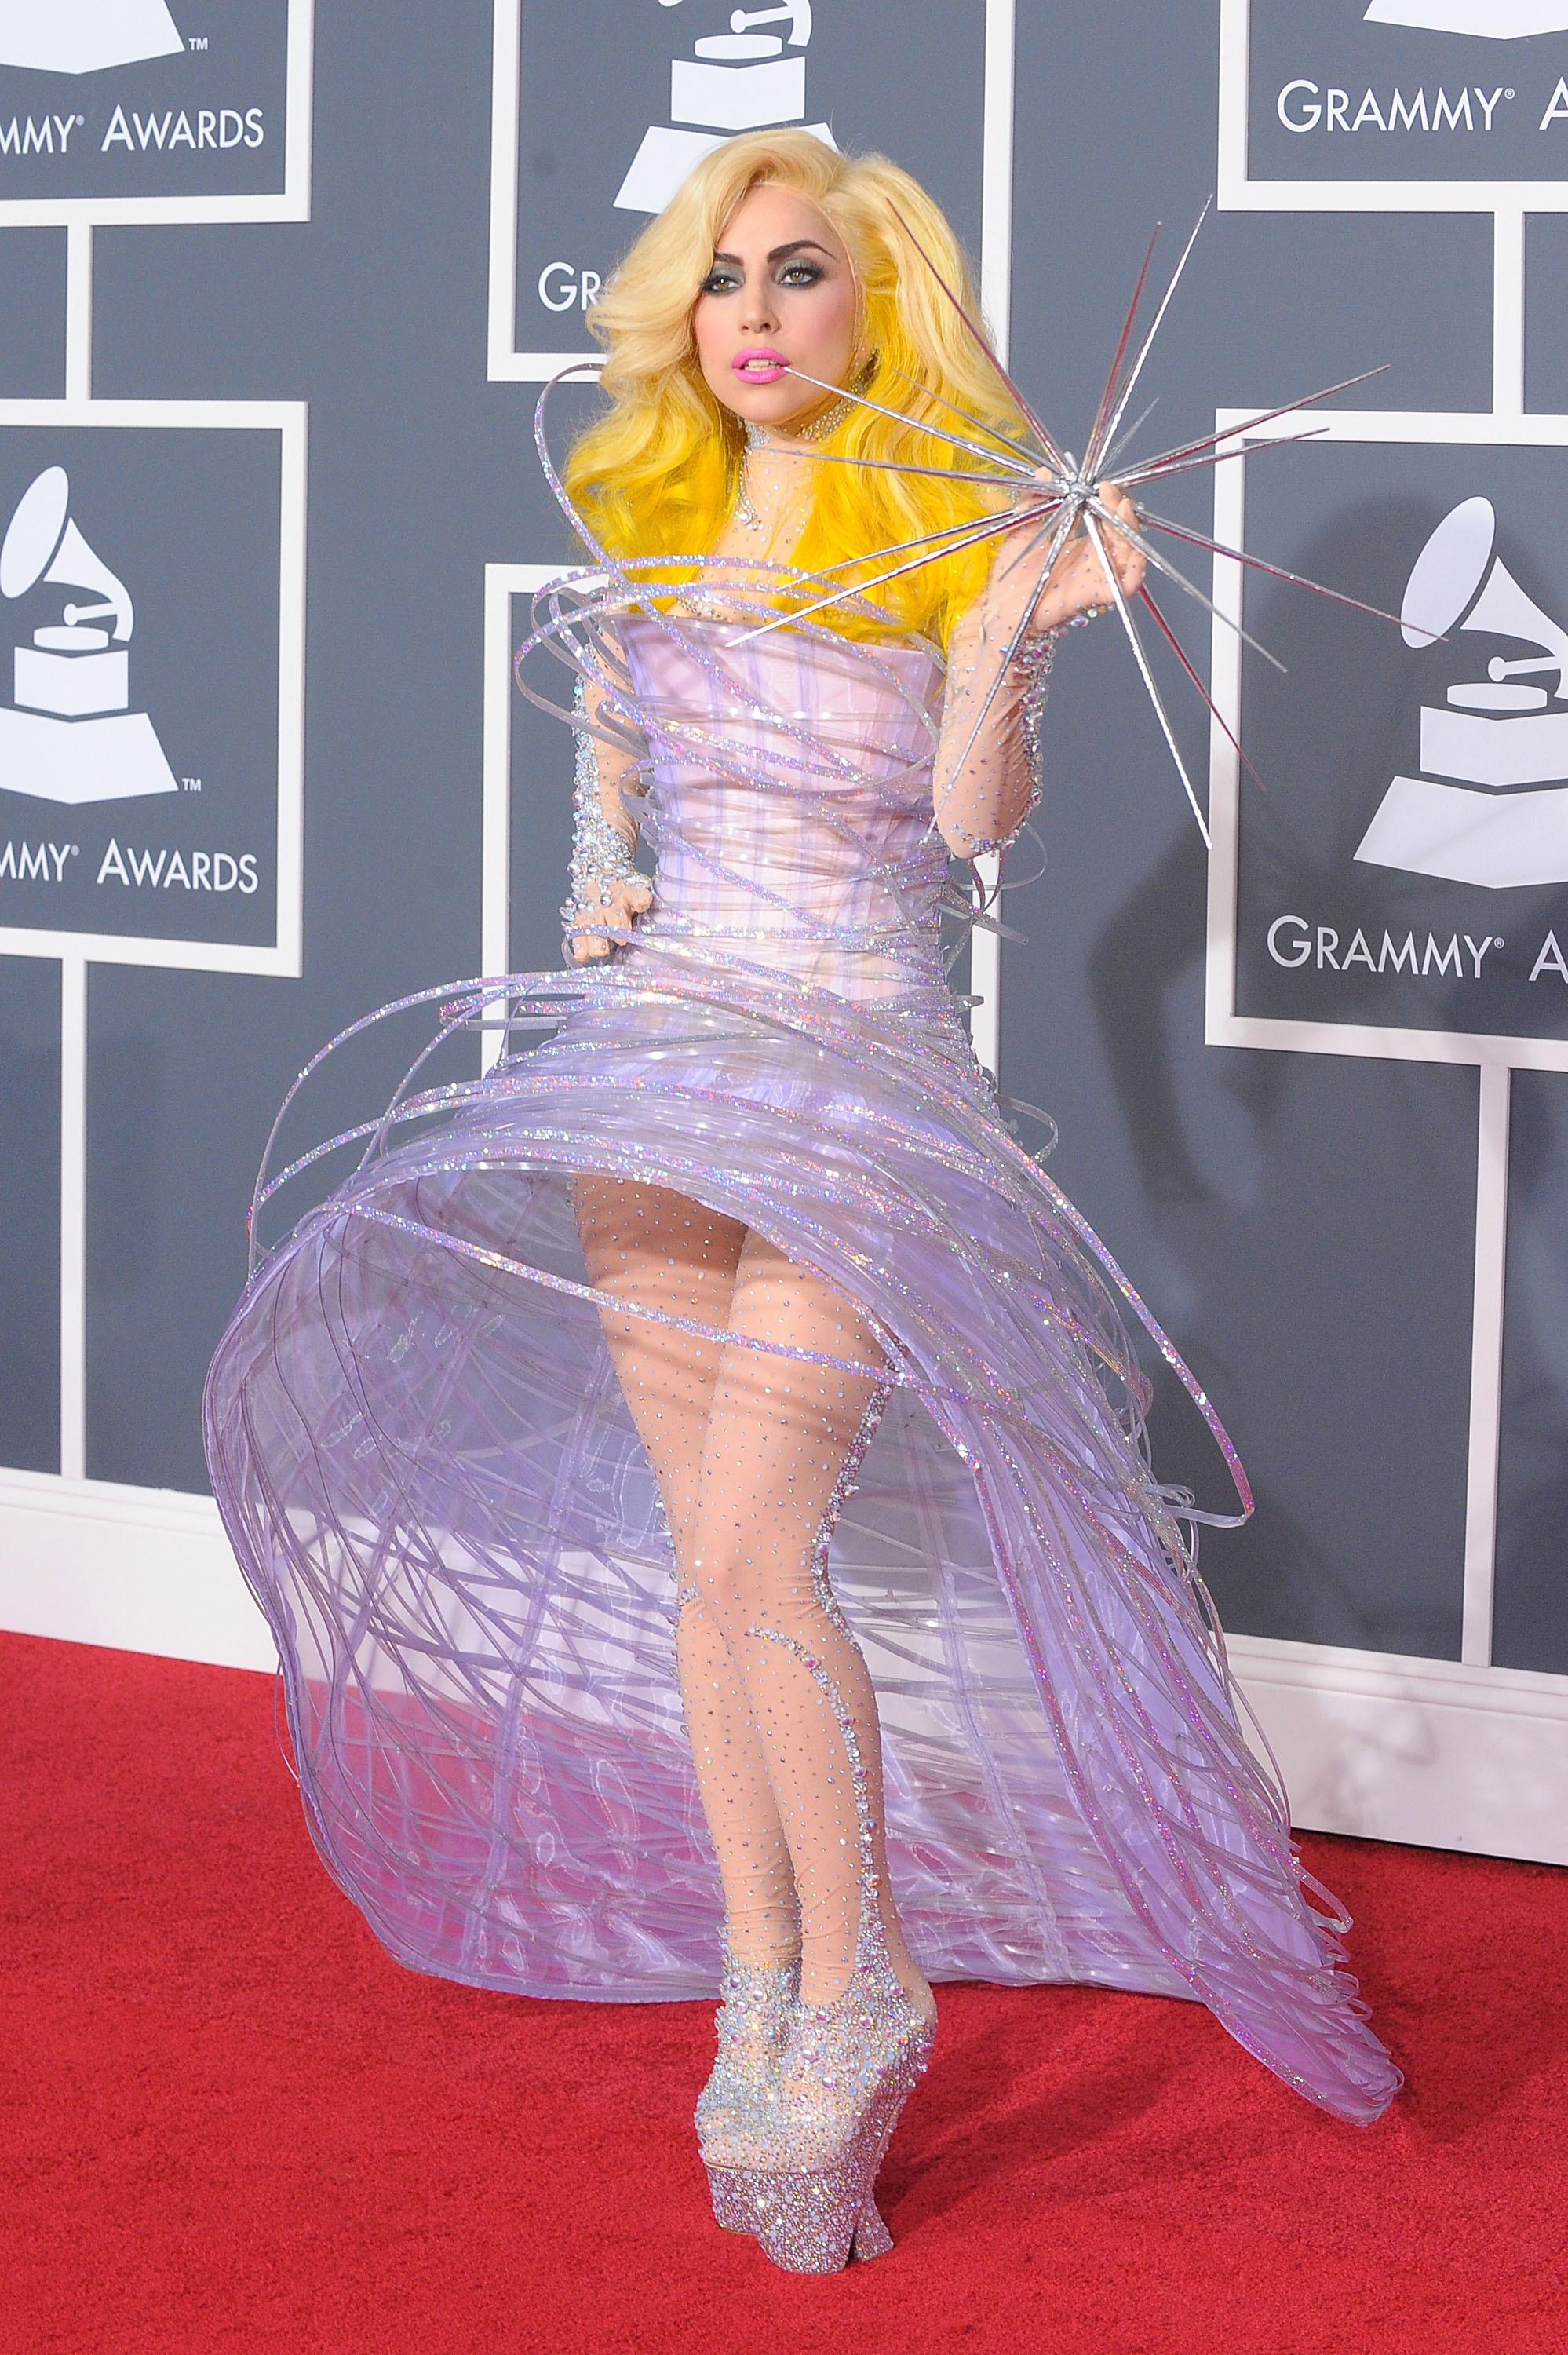 Lady Gaga arrives at the 52nd Annual Grammy Awards held at Staples Center in Los Angeles on Jan. 31, 2010.